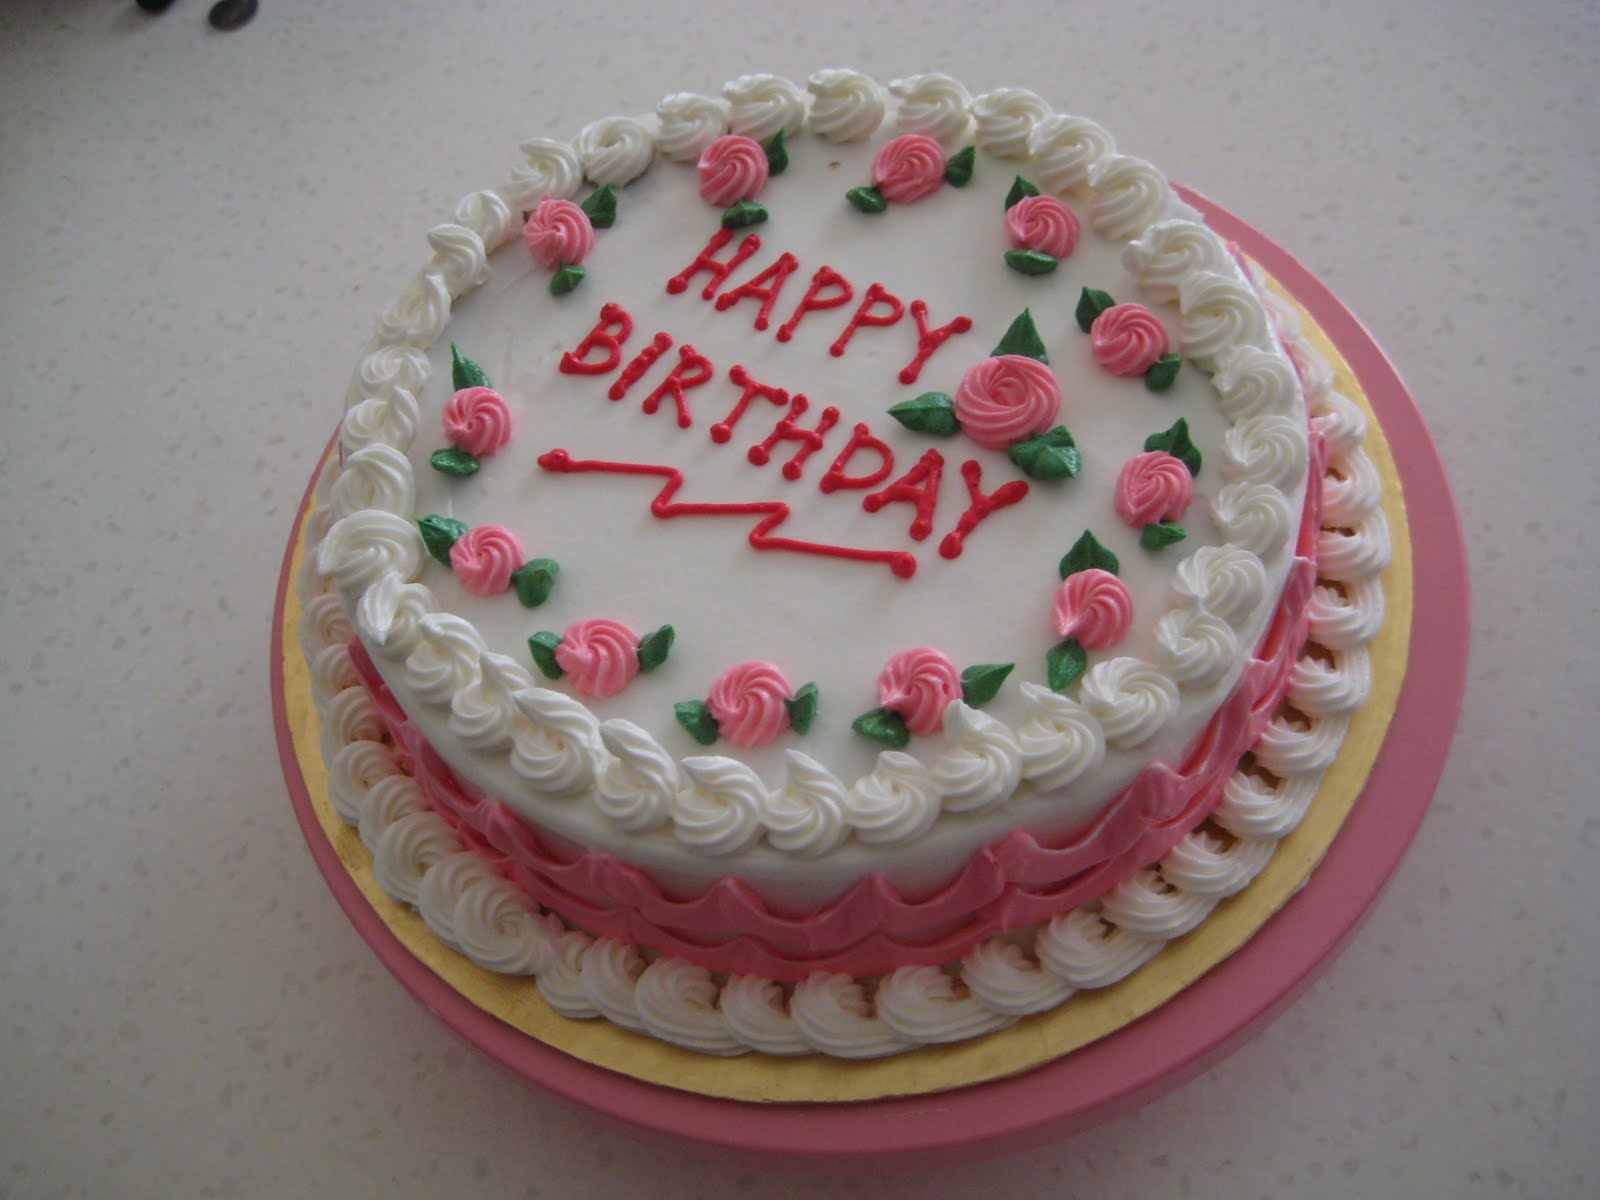 Easy Birthday Cake Images : SIMPLE BIRTHDAY CAKE Nin s Kek Kecik